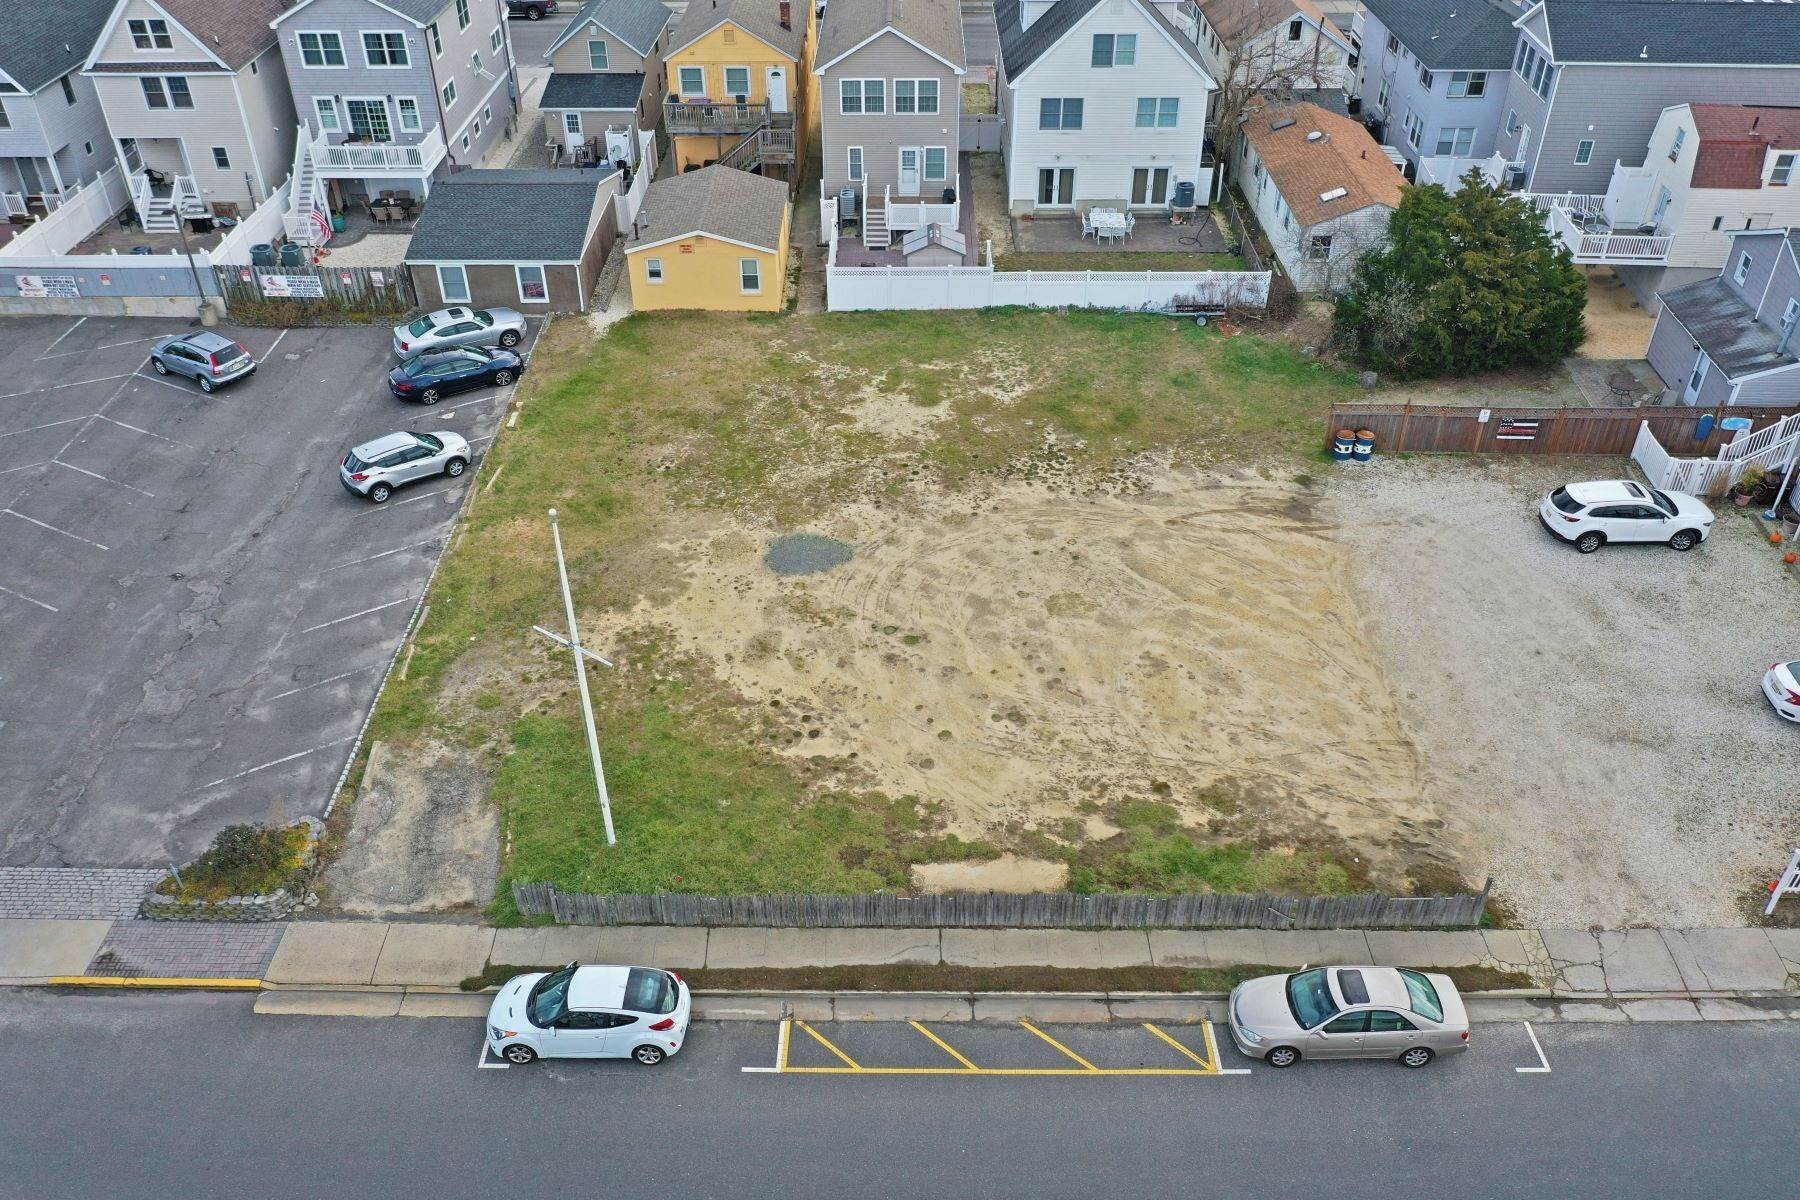 Land for Sale at Vacant Lot Two Blocks From Manasquan Beach 236 2nd Avenue Manasquan, New Jersey 08736 United States